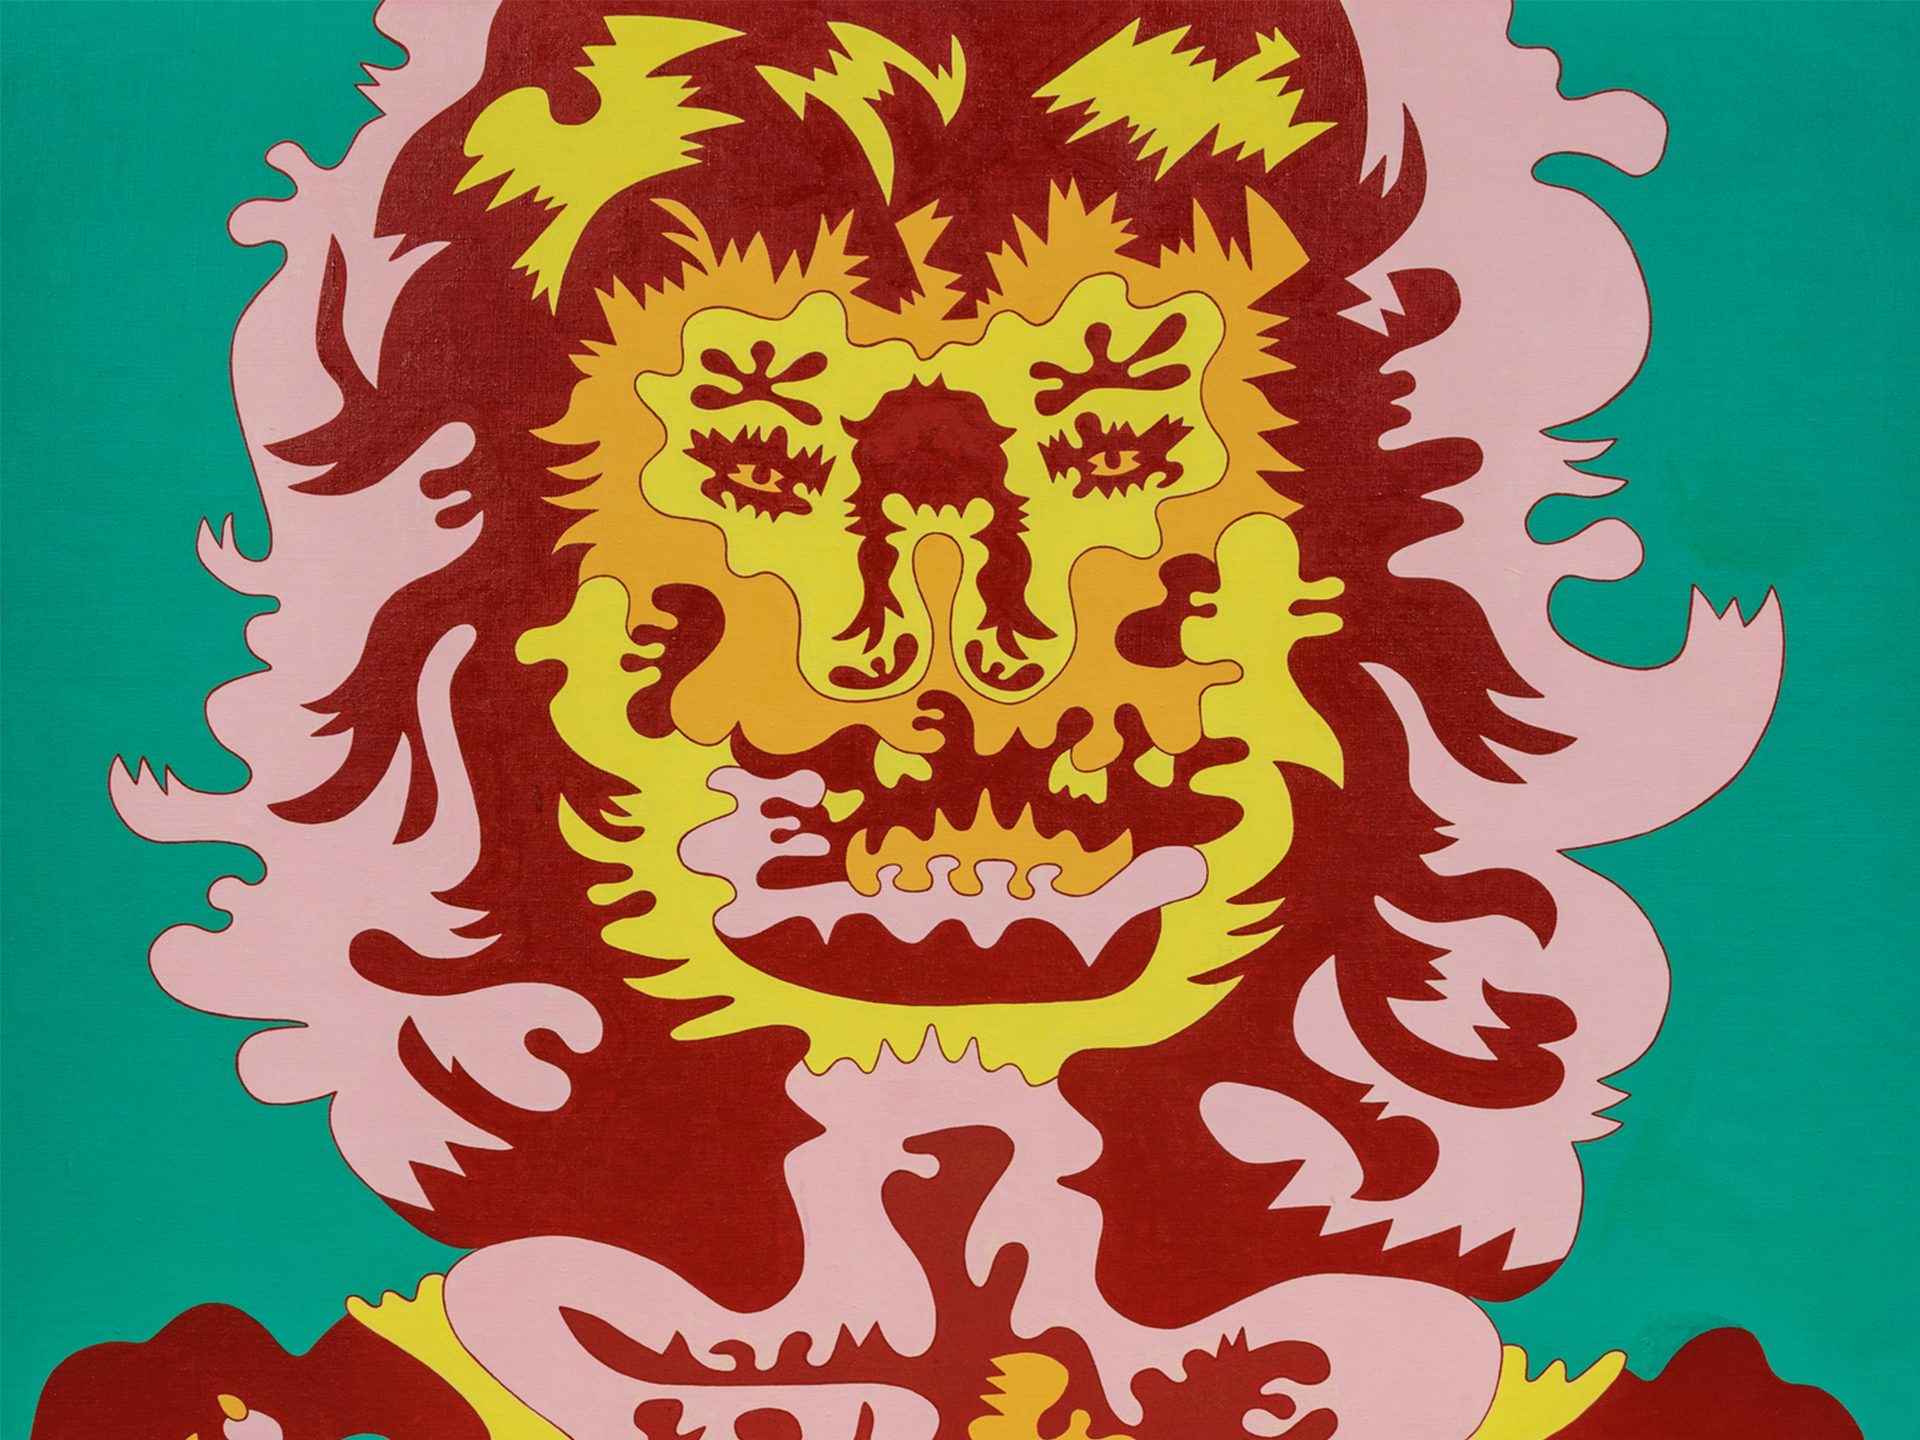 HINDMAN TO OFFER WORKS BY THE HAIRY WHO? AND THE CHICAGO IMAGISTS